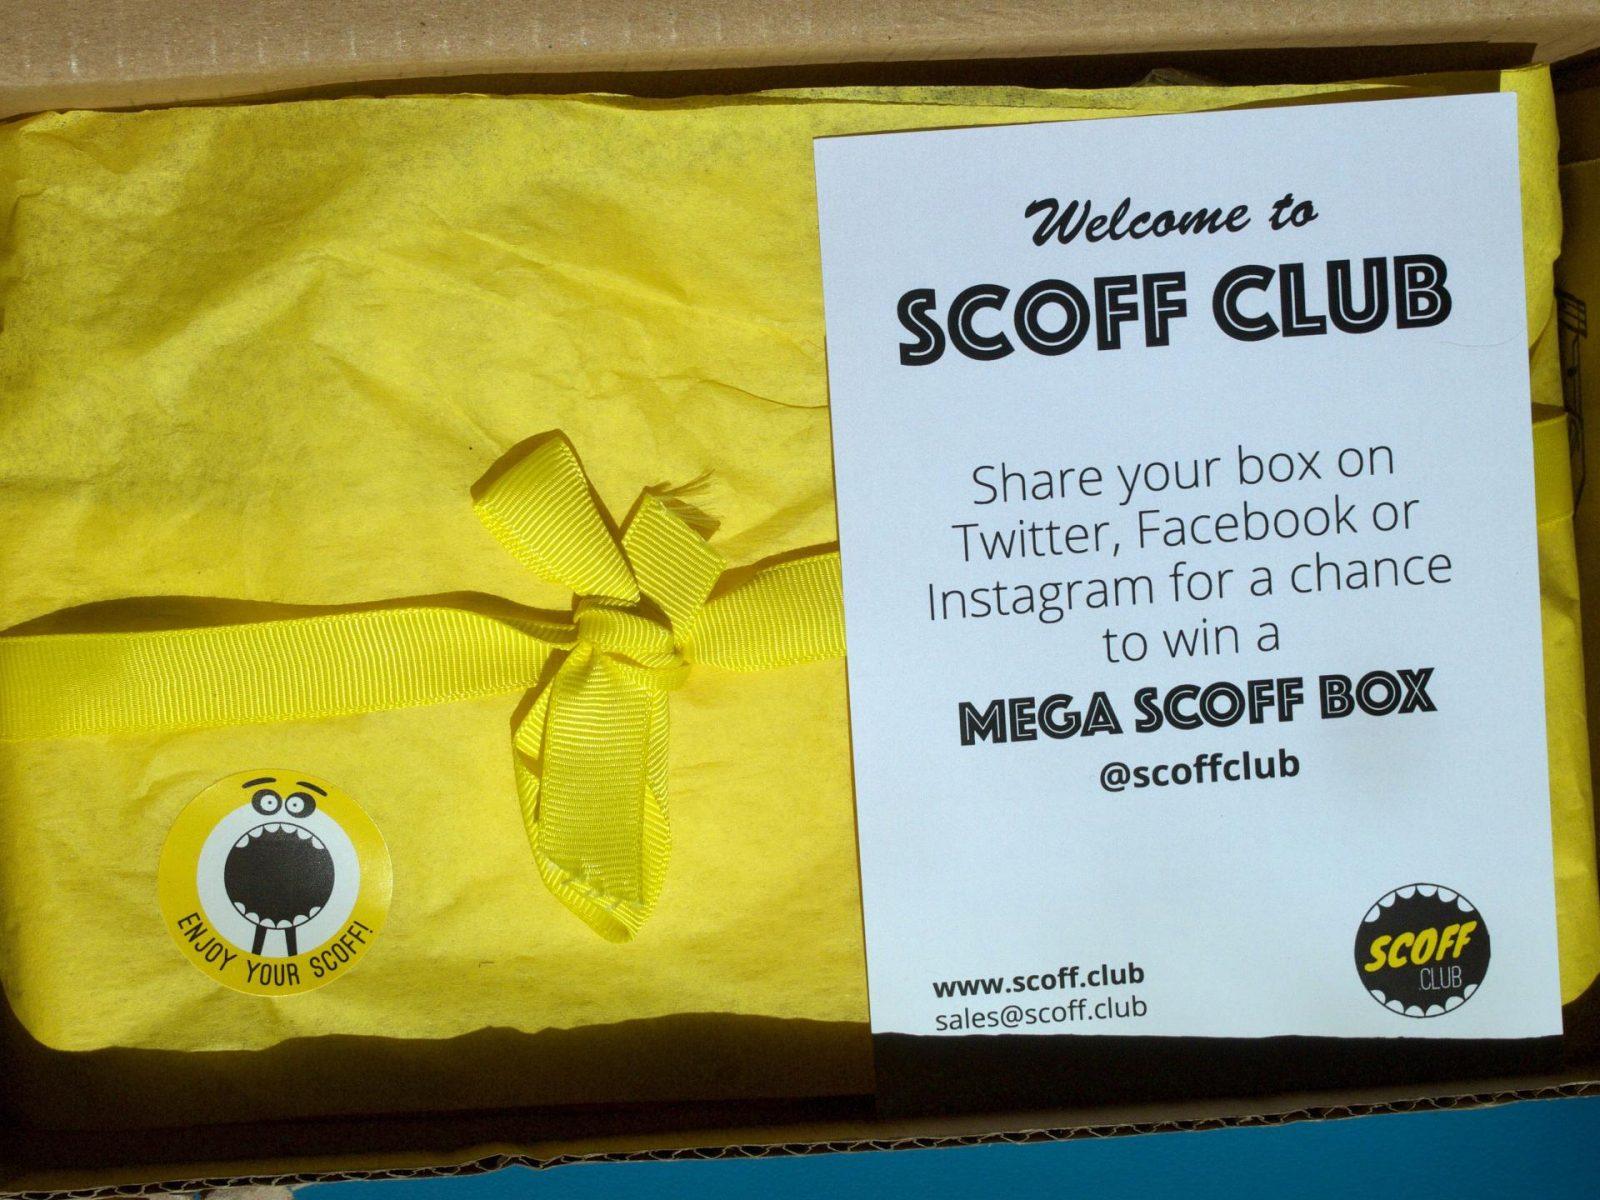 Scoff club review